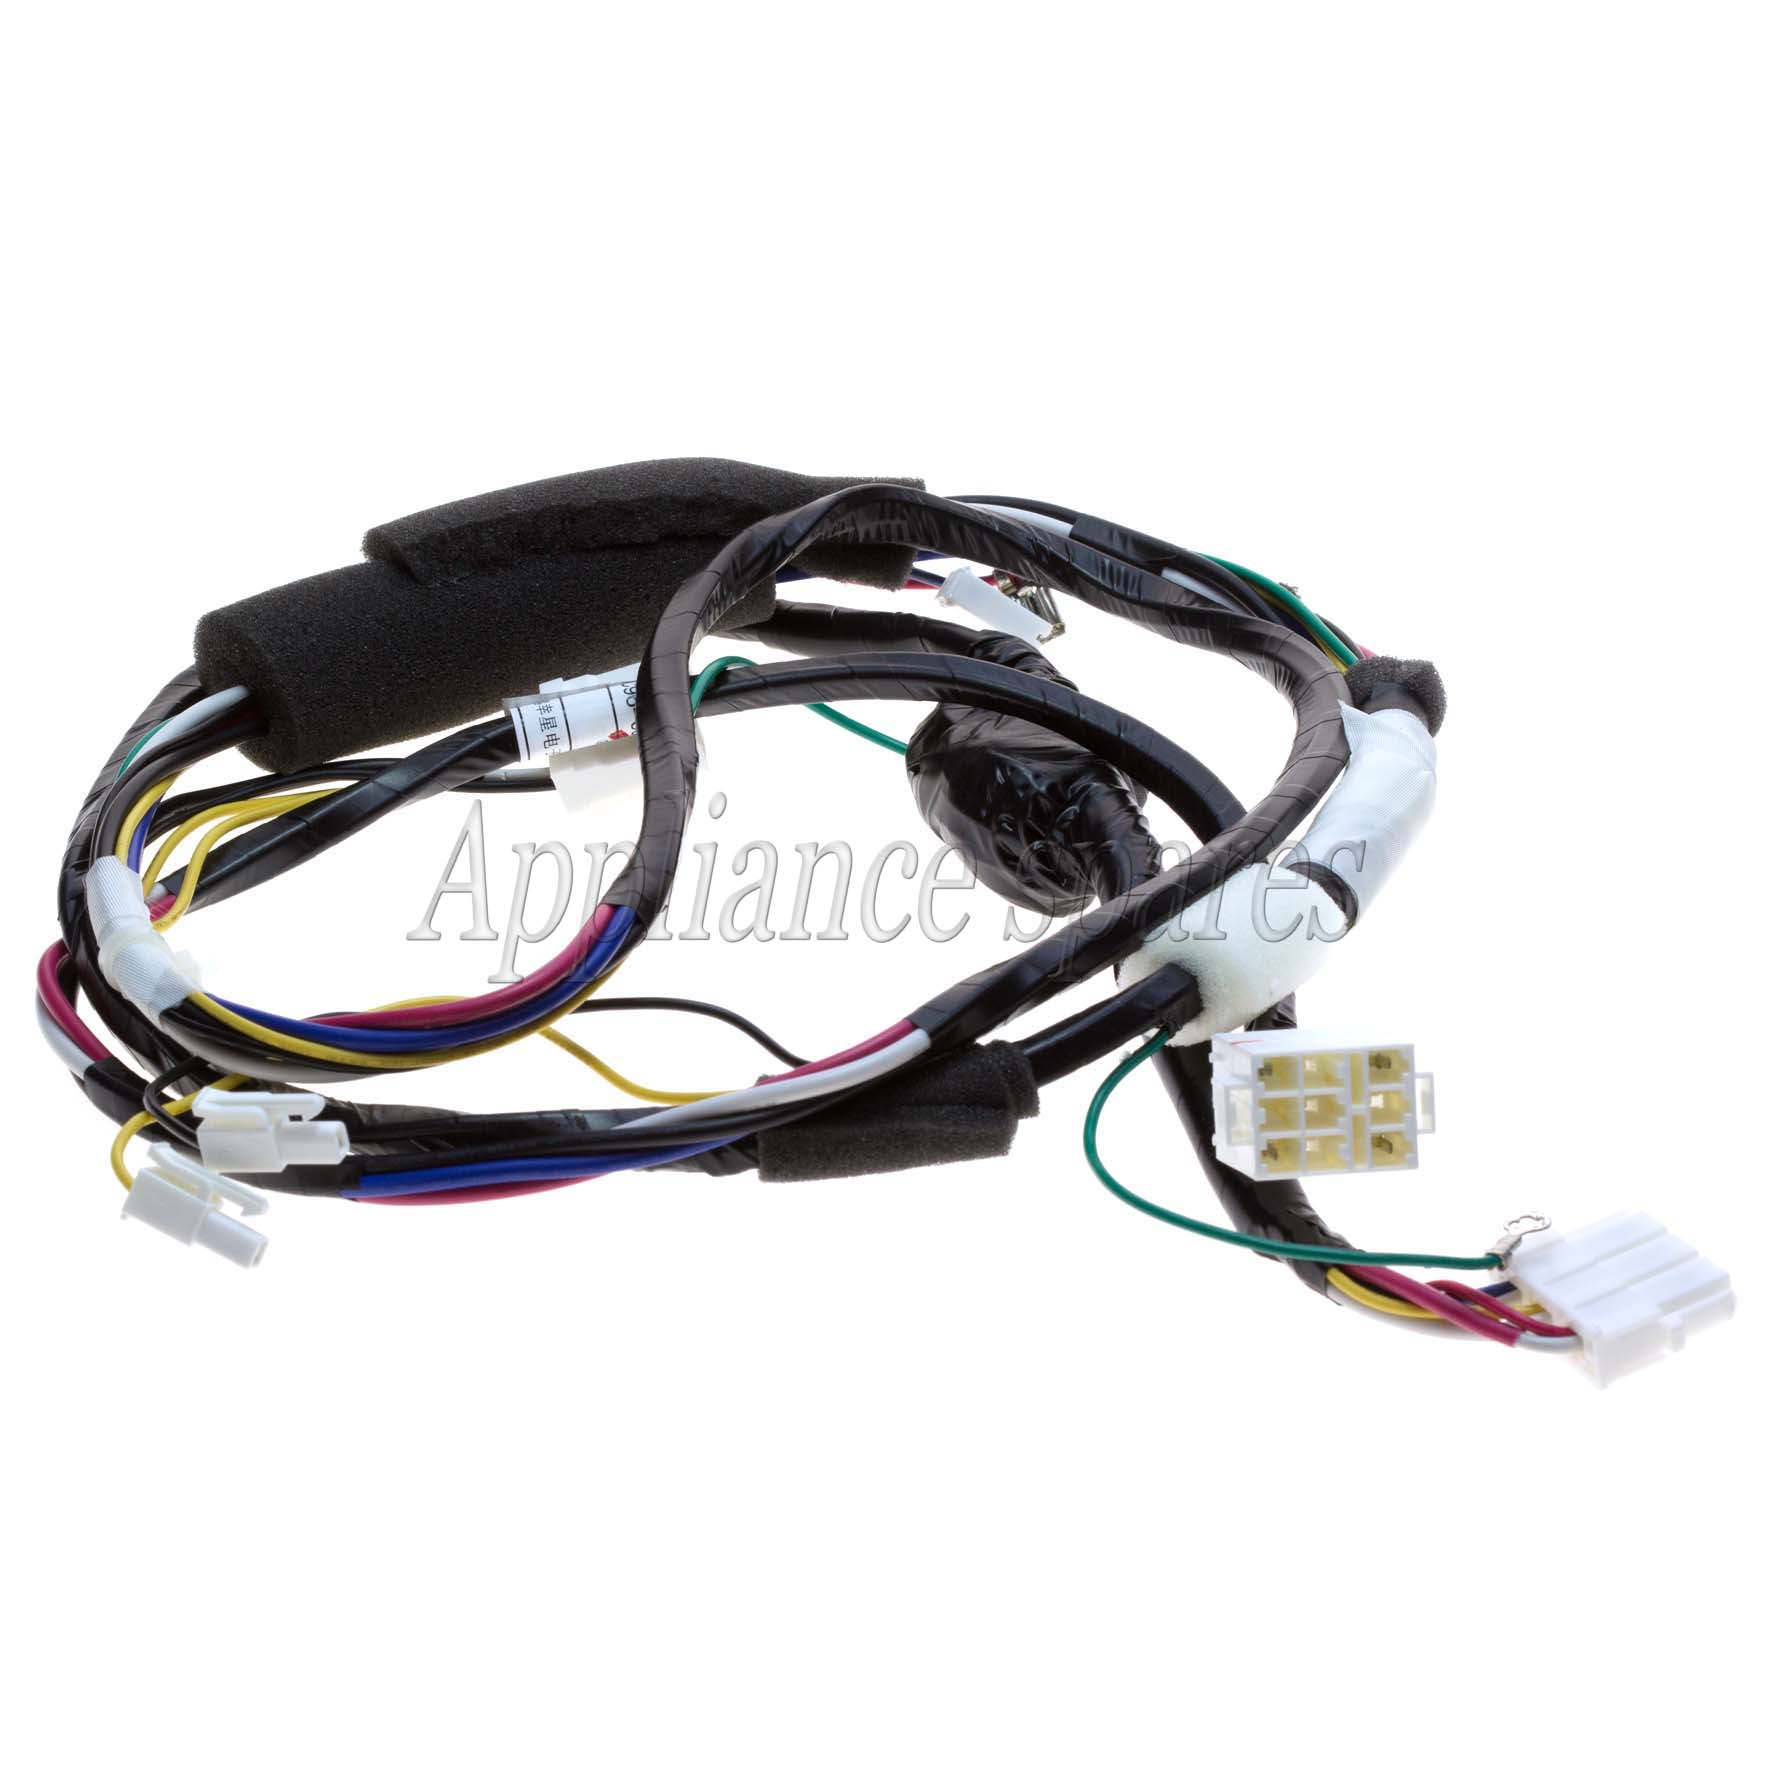 Electric Oven Wire Harness Samsung Wiring Diagram Top Loader Washing Machine Lategan And Vansamsung